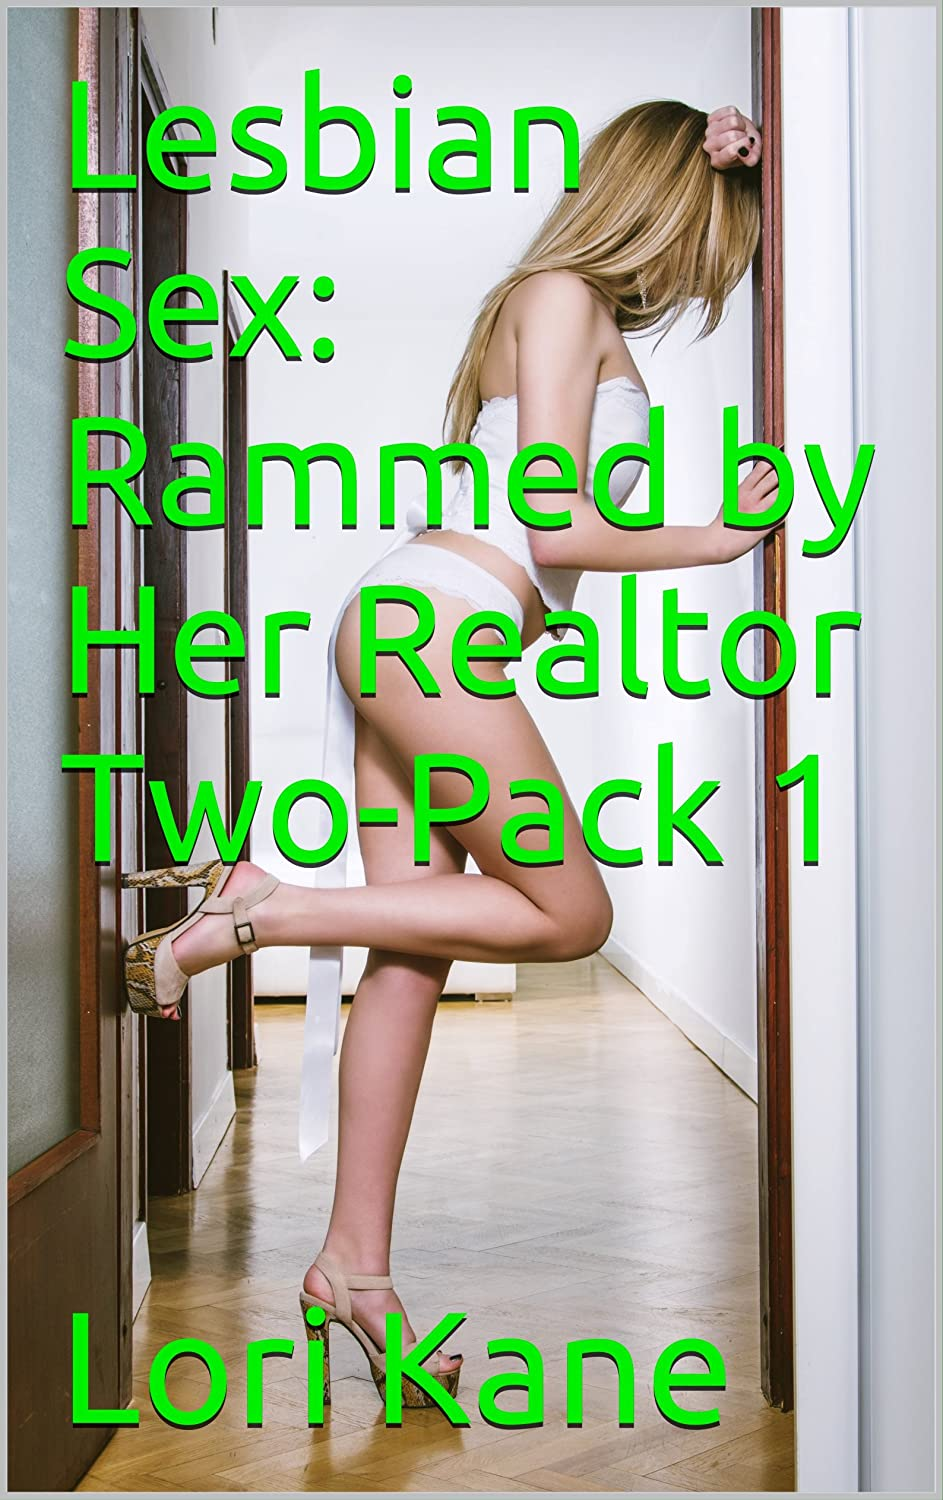 Lesbian Sex: Rammed by Her Realtor Two-Pack 1 (ADVENTURE/ ANAL SEX/ FF SEX/ LESBIAN SEX/ REALTOR SEX/ ROUGH SEX/ STRAP-ON SEX / STRAPON SEX) (English Edition) eBook: Kane, Lori: Amazon.es: Tienda Kindle